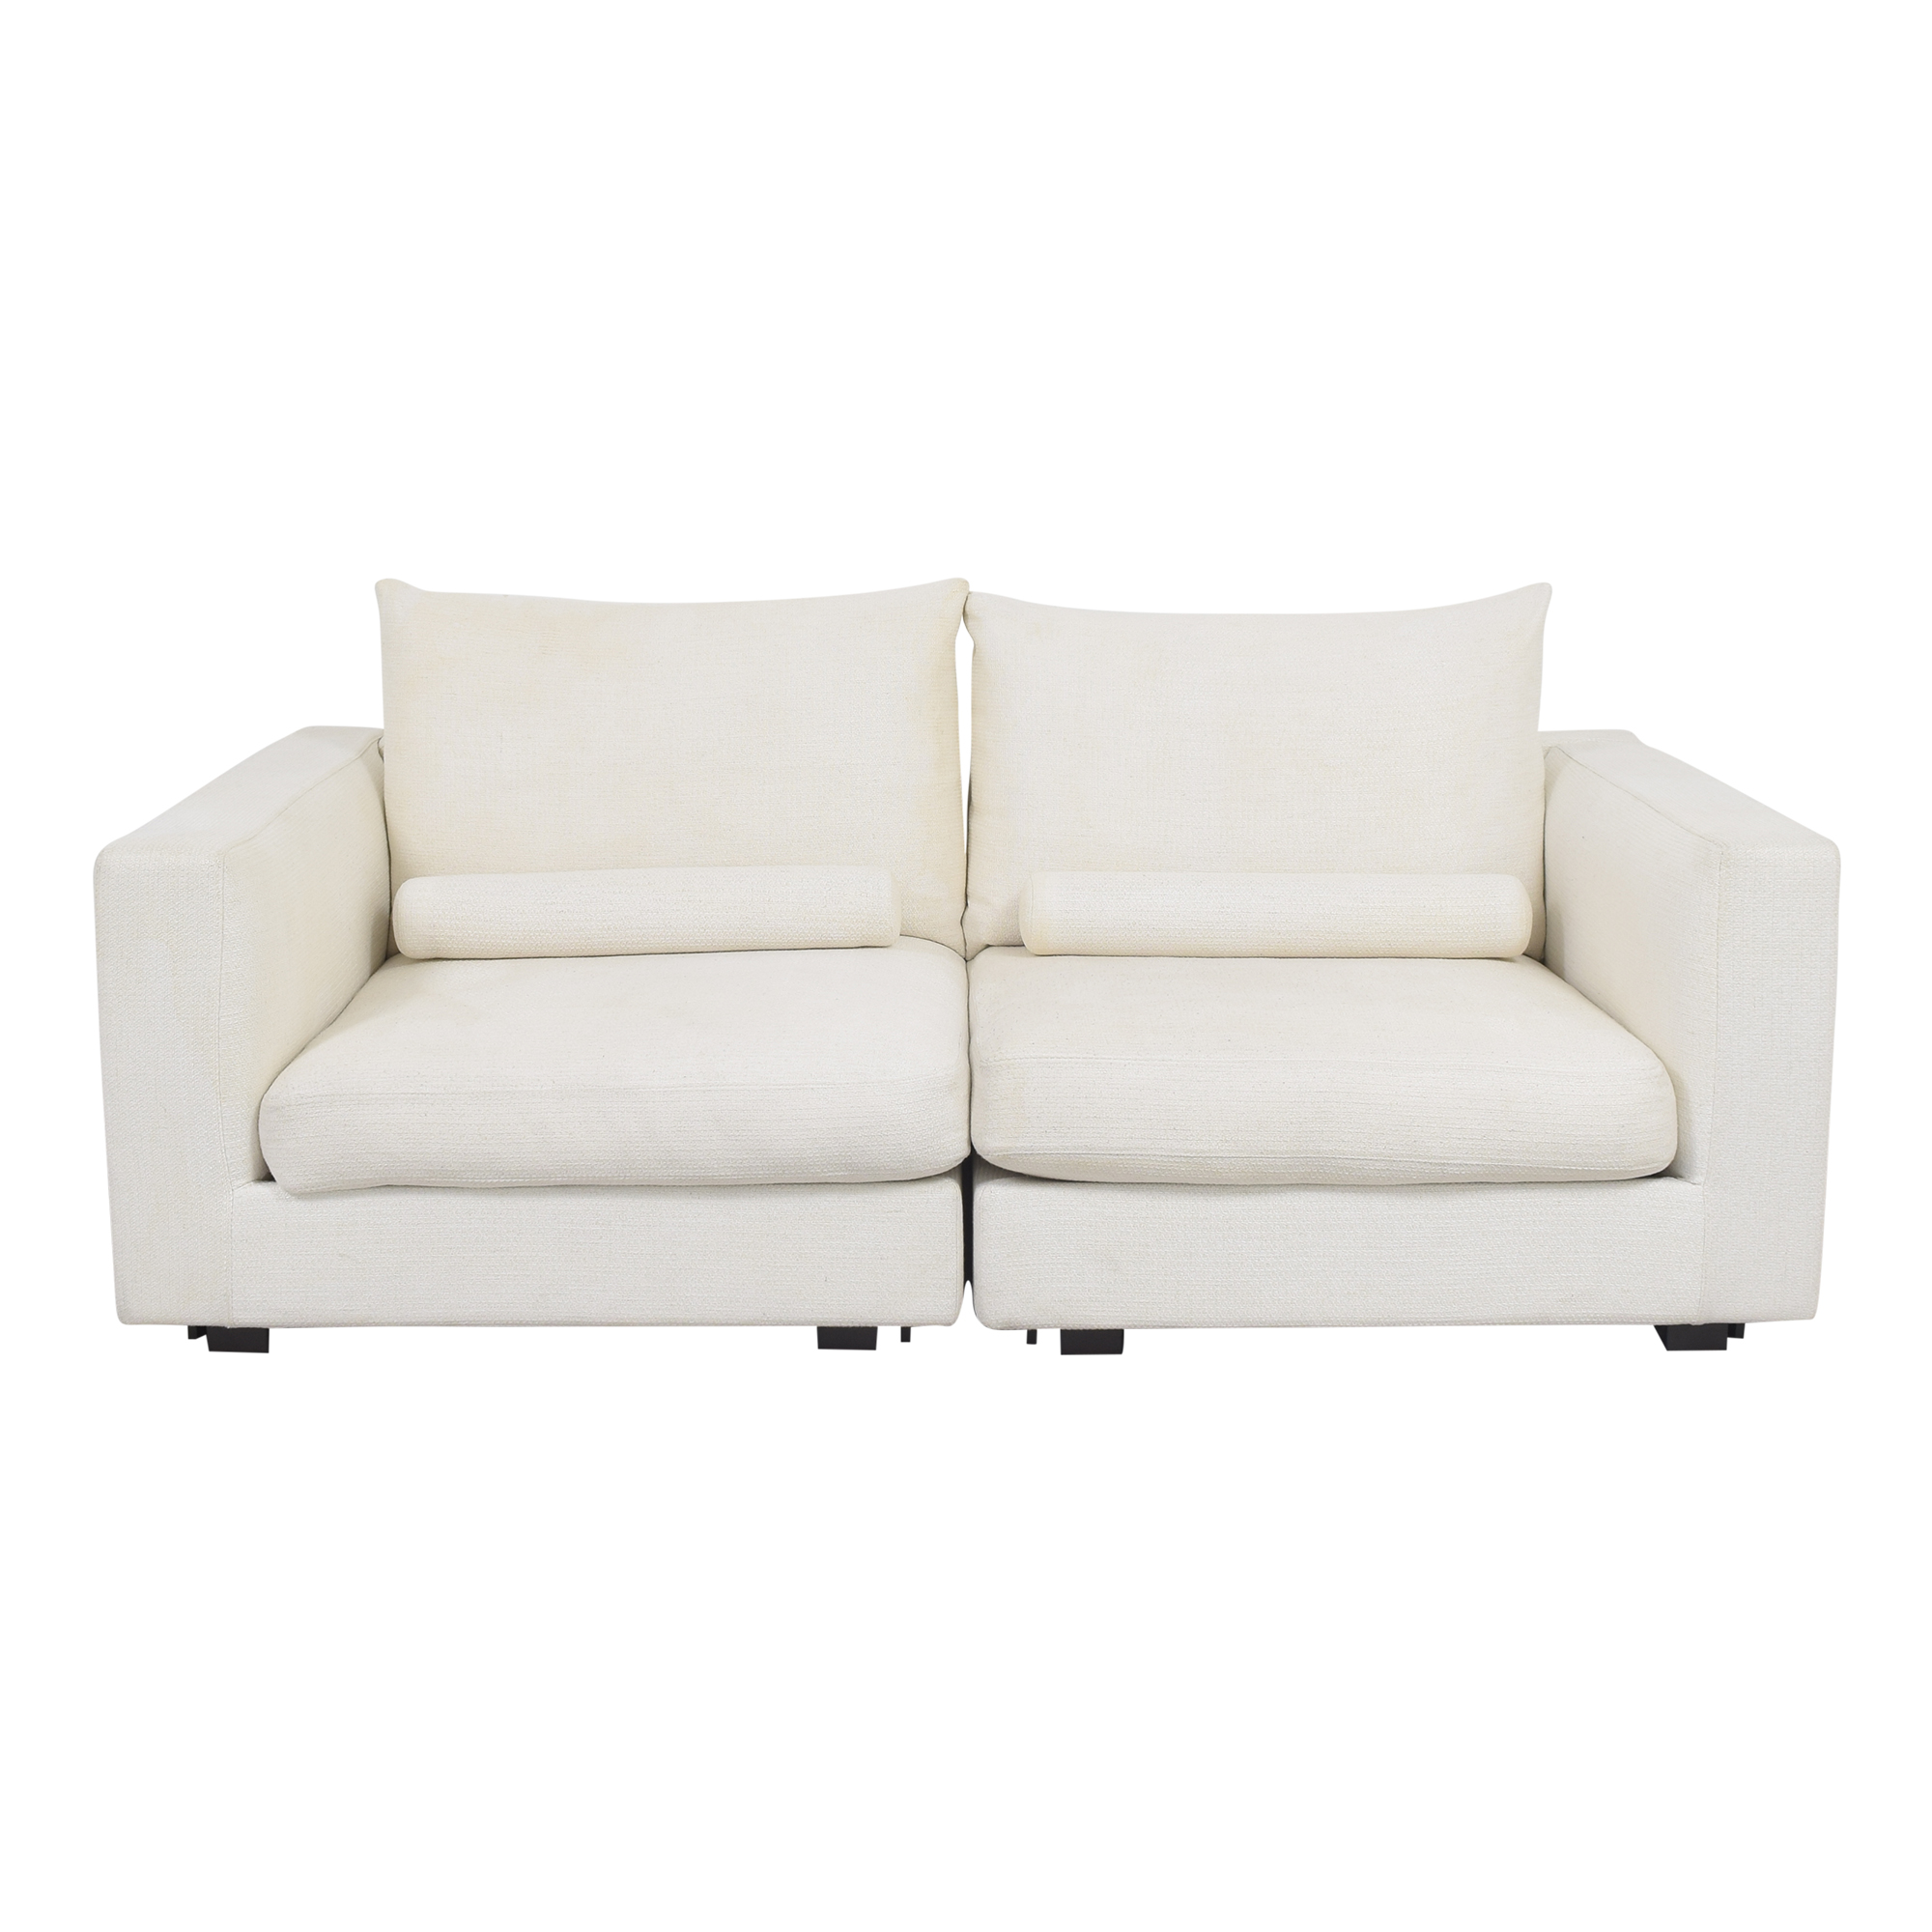 West Elm West Elm Hampton Two Piece Modular Sofa dimensions